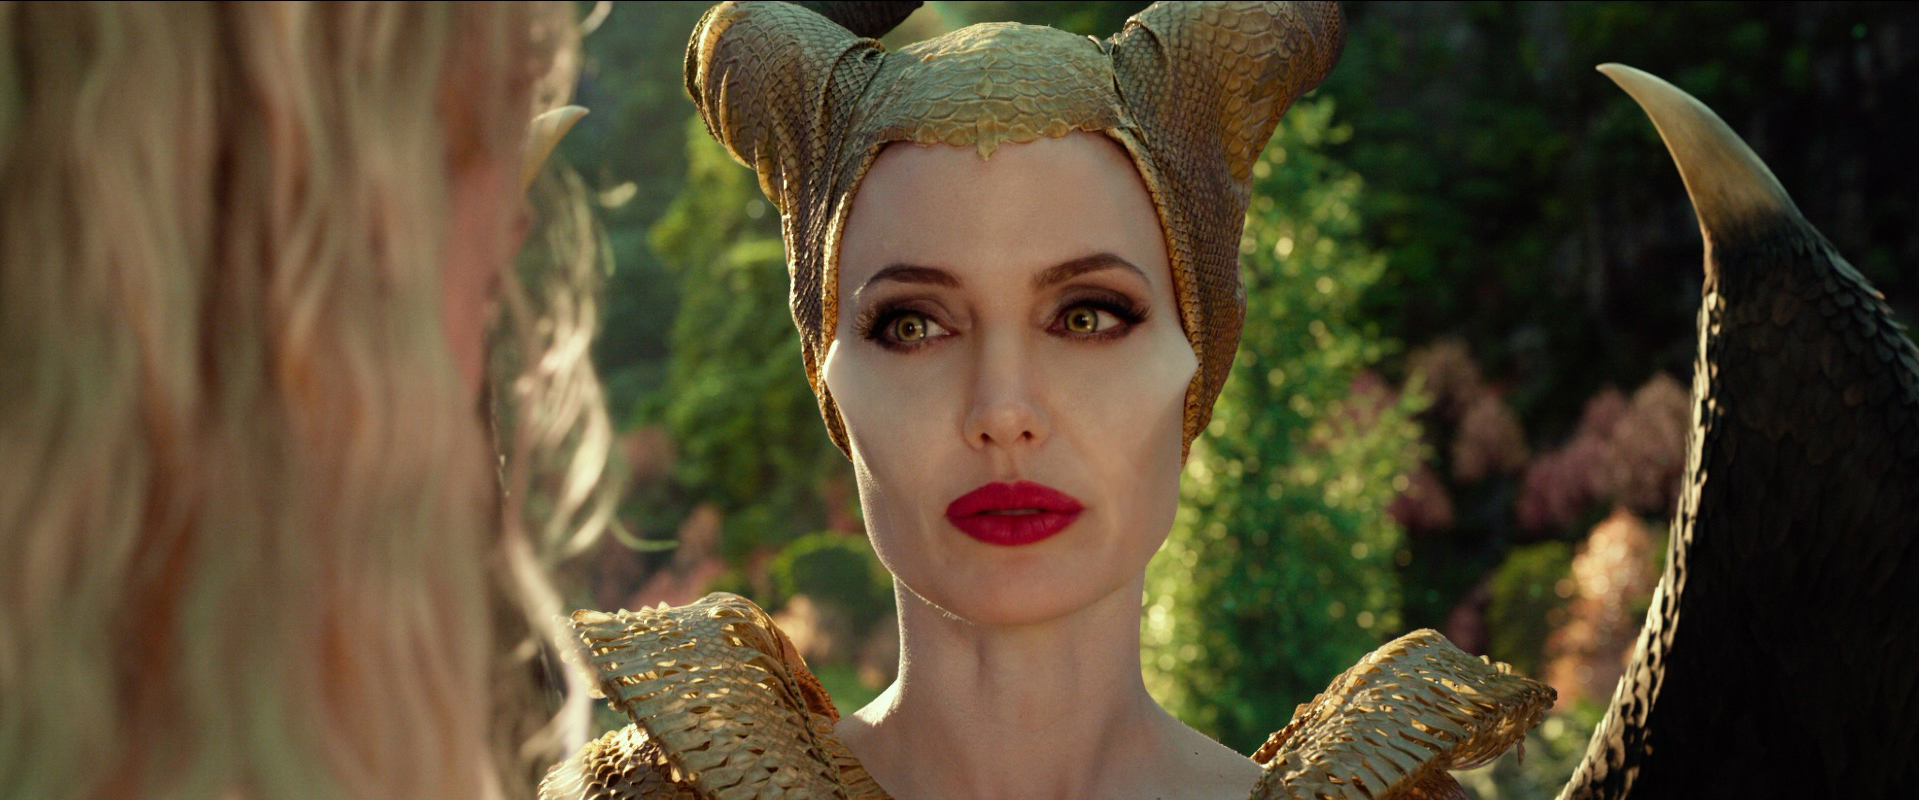 Maleficent Almost Met Her Mom In The Sequel Exclusive